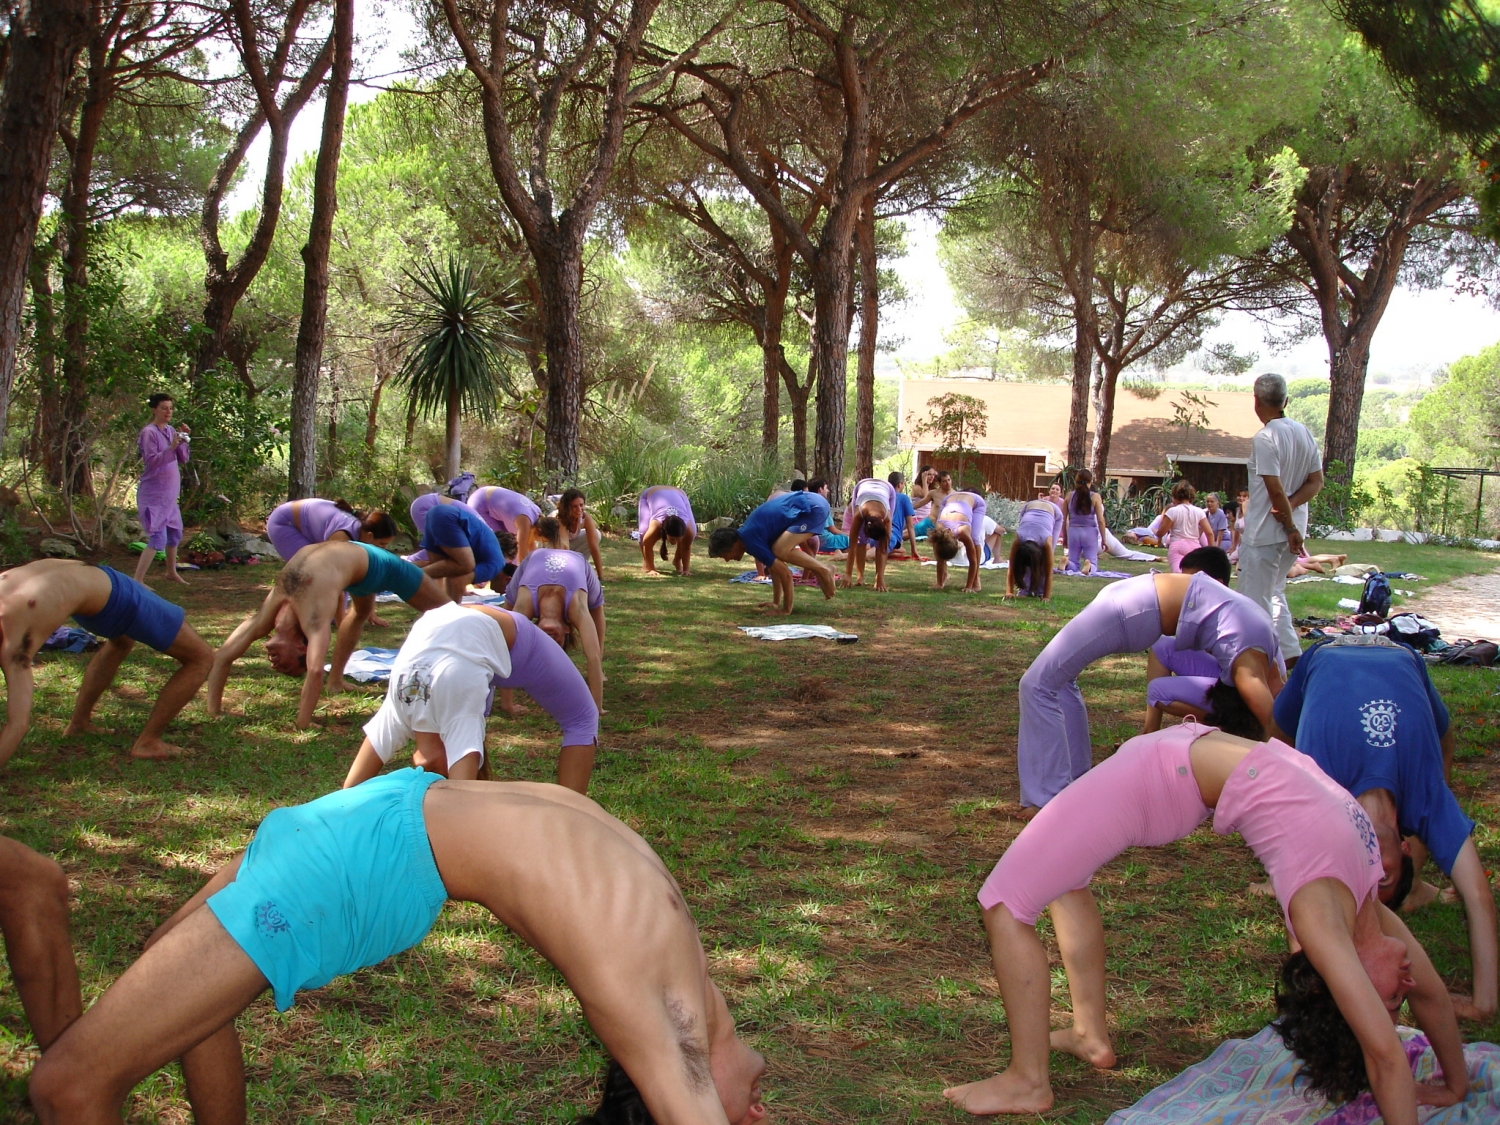 Semana Intensiva do Yoga - 2007 - Quinta da Calma, Algarve